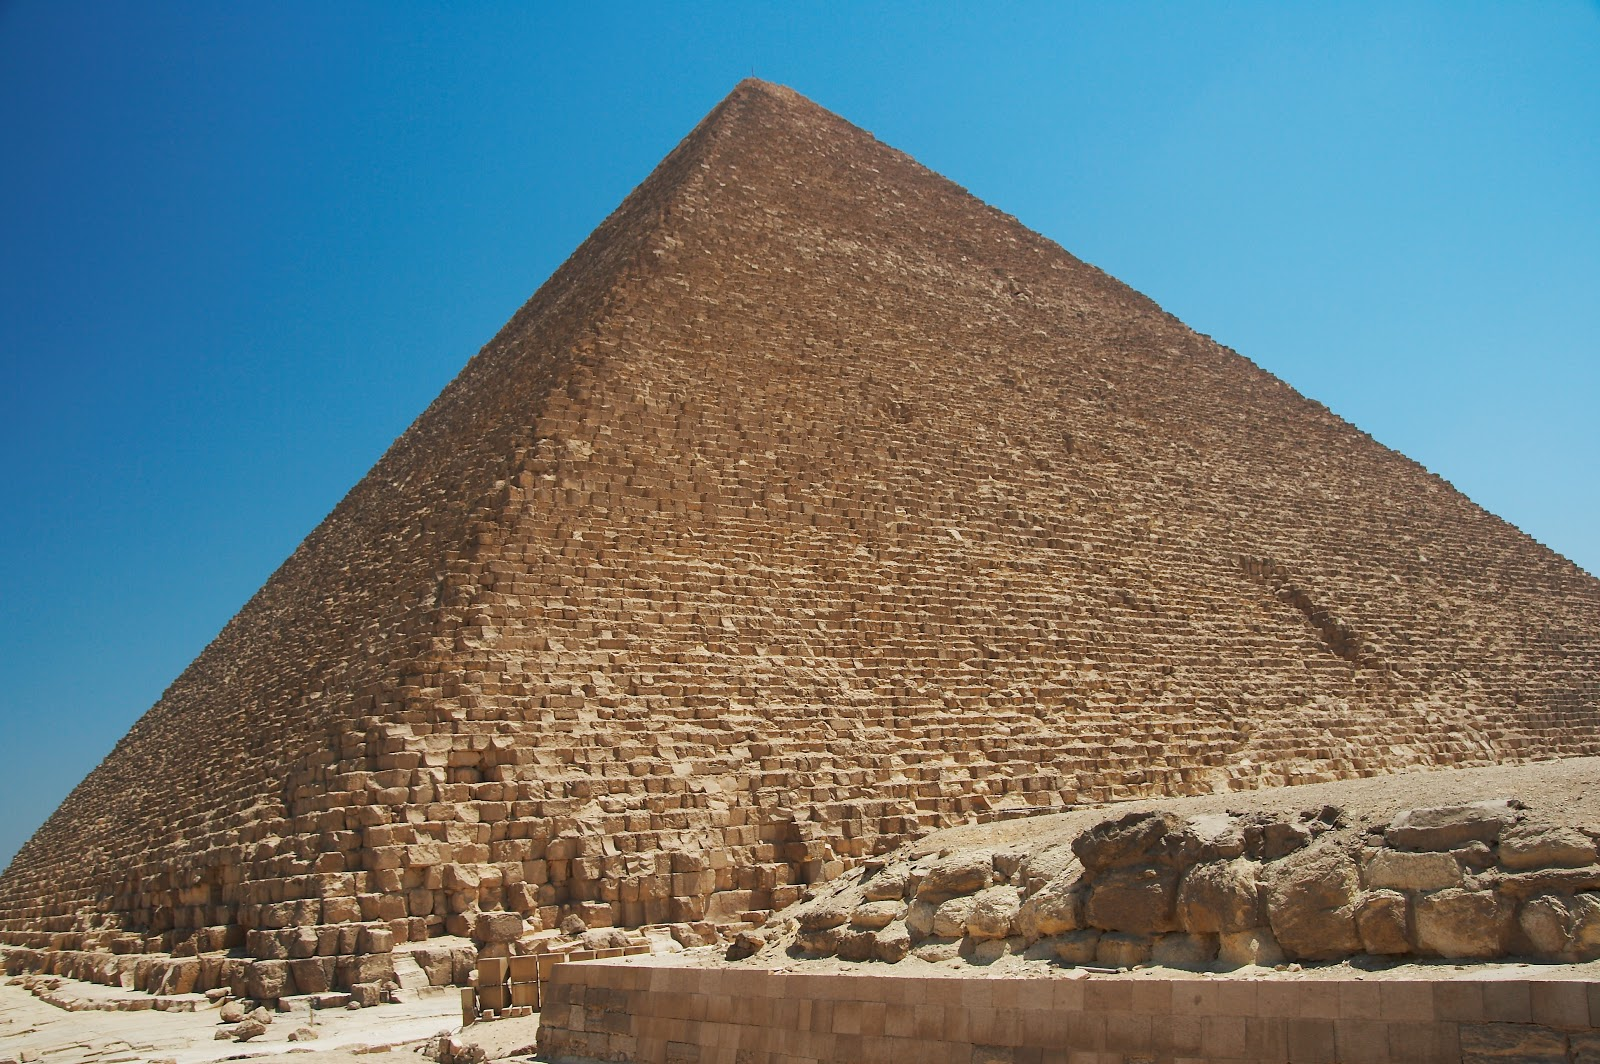 Student Stories on the Seven Wonders of the Ancient World